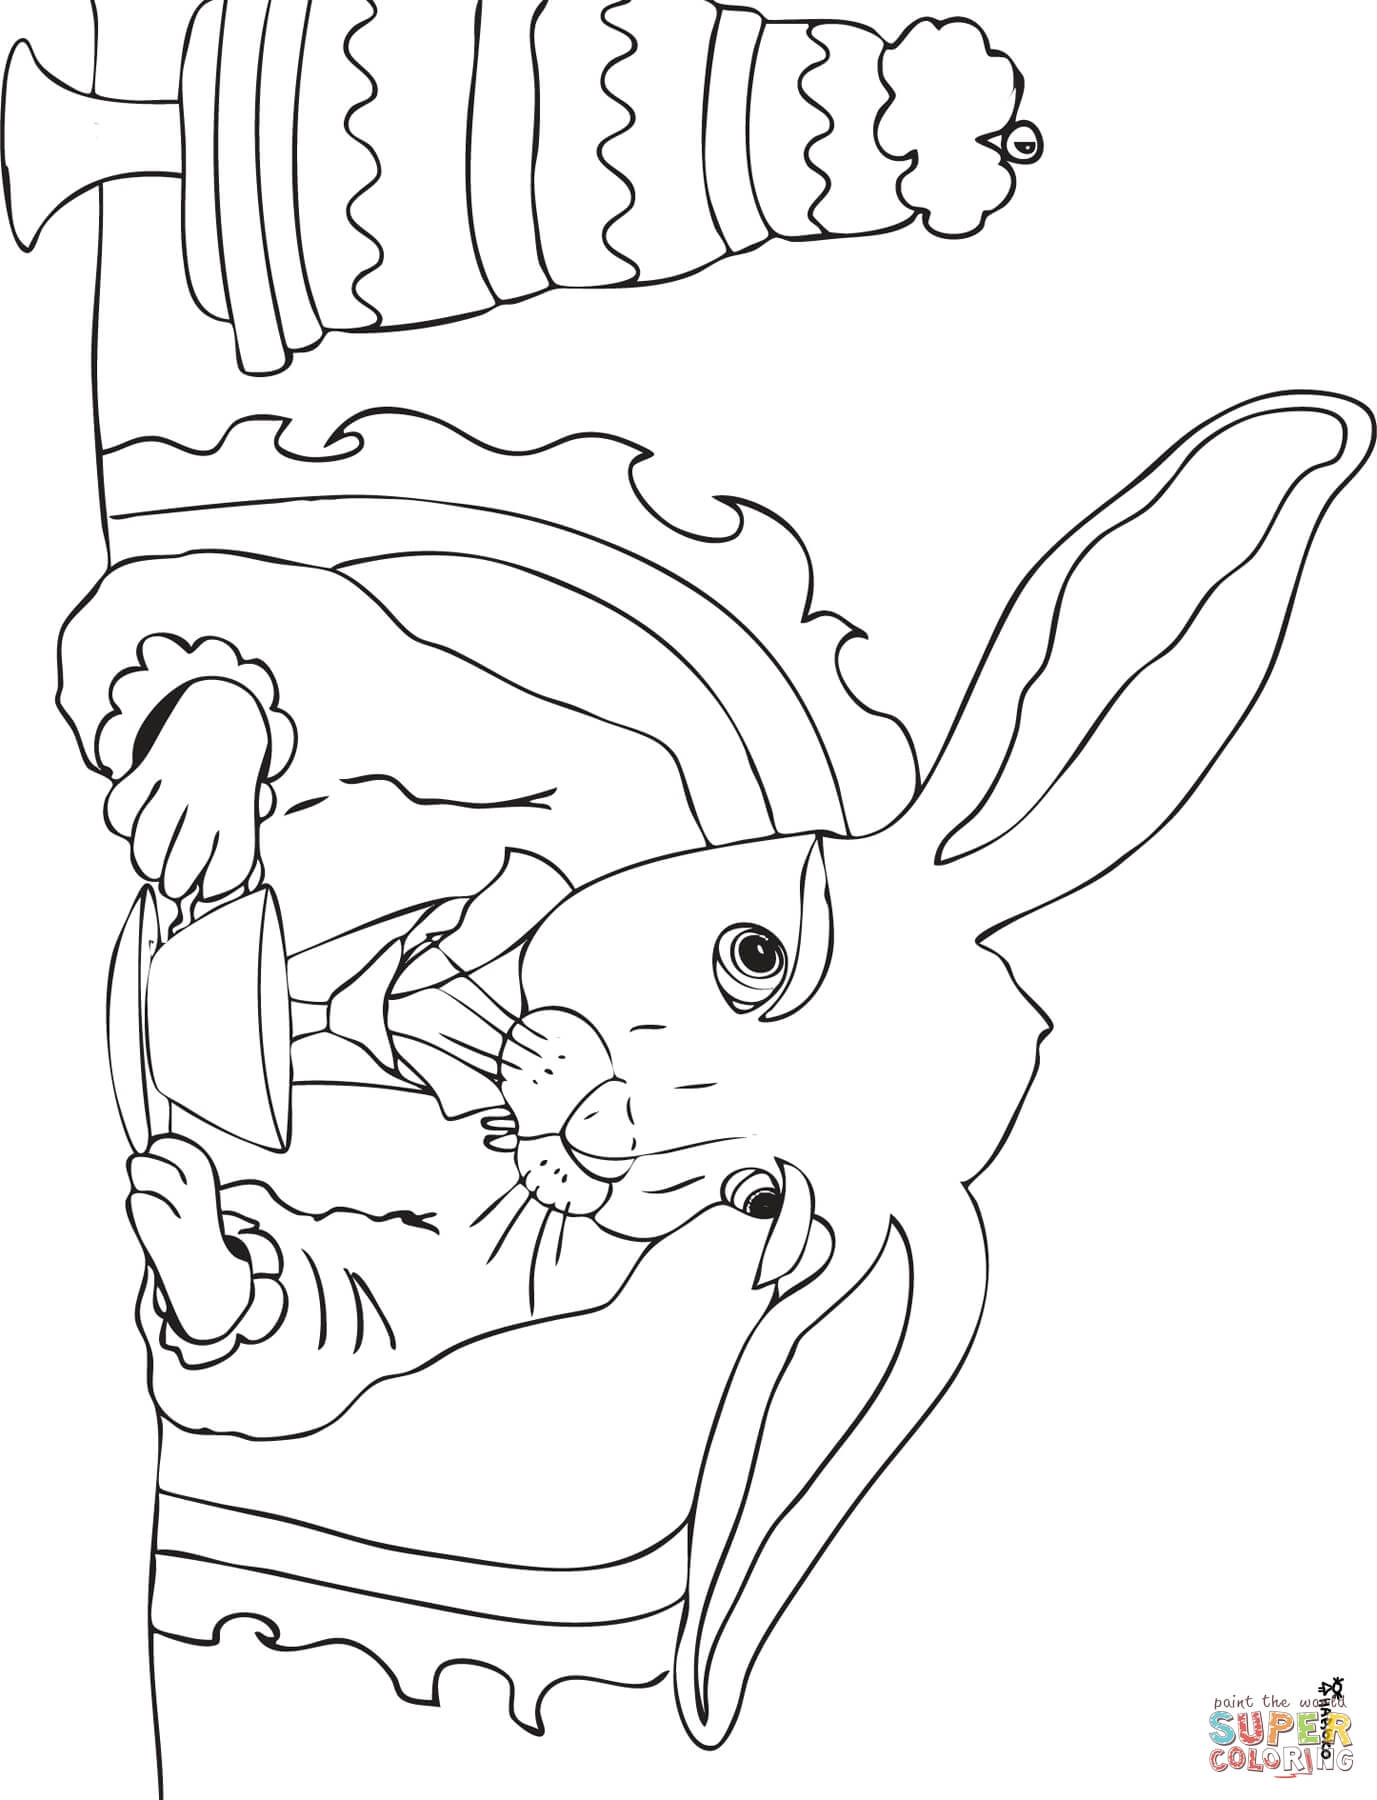 mad hatter coloring pages - photo#38